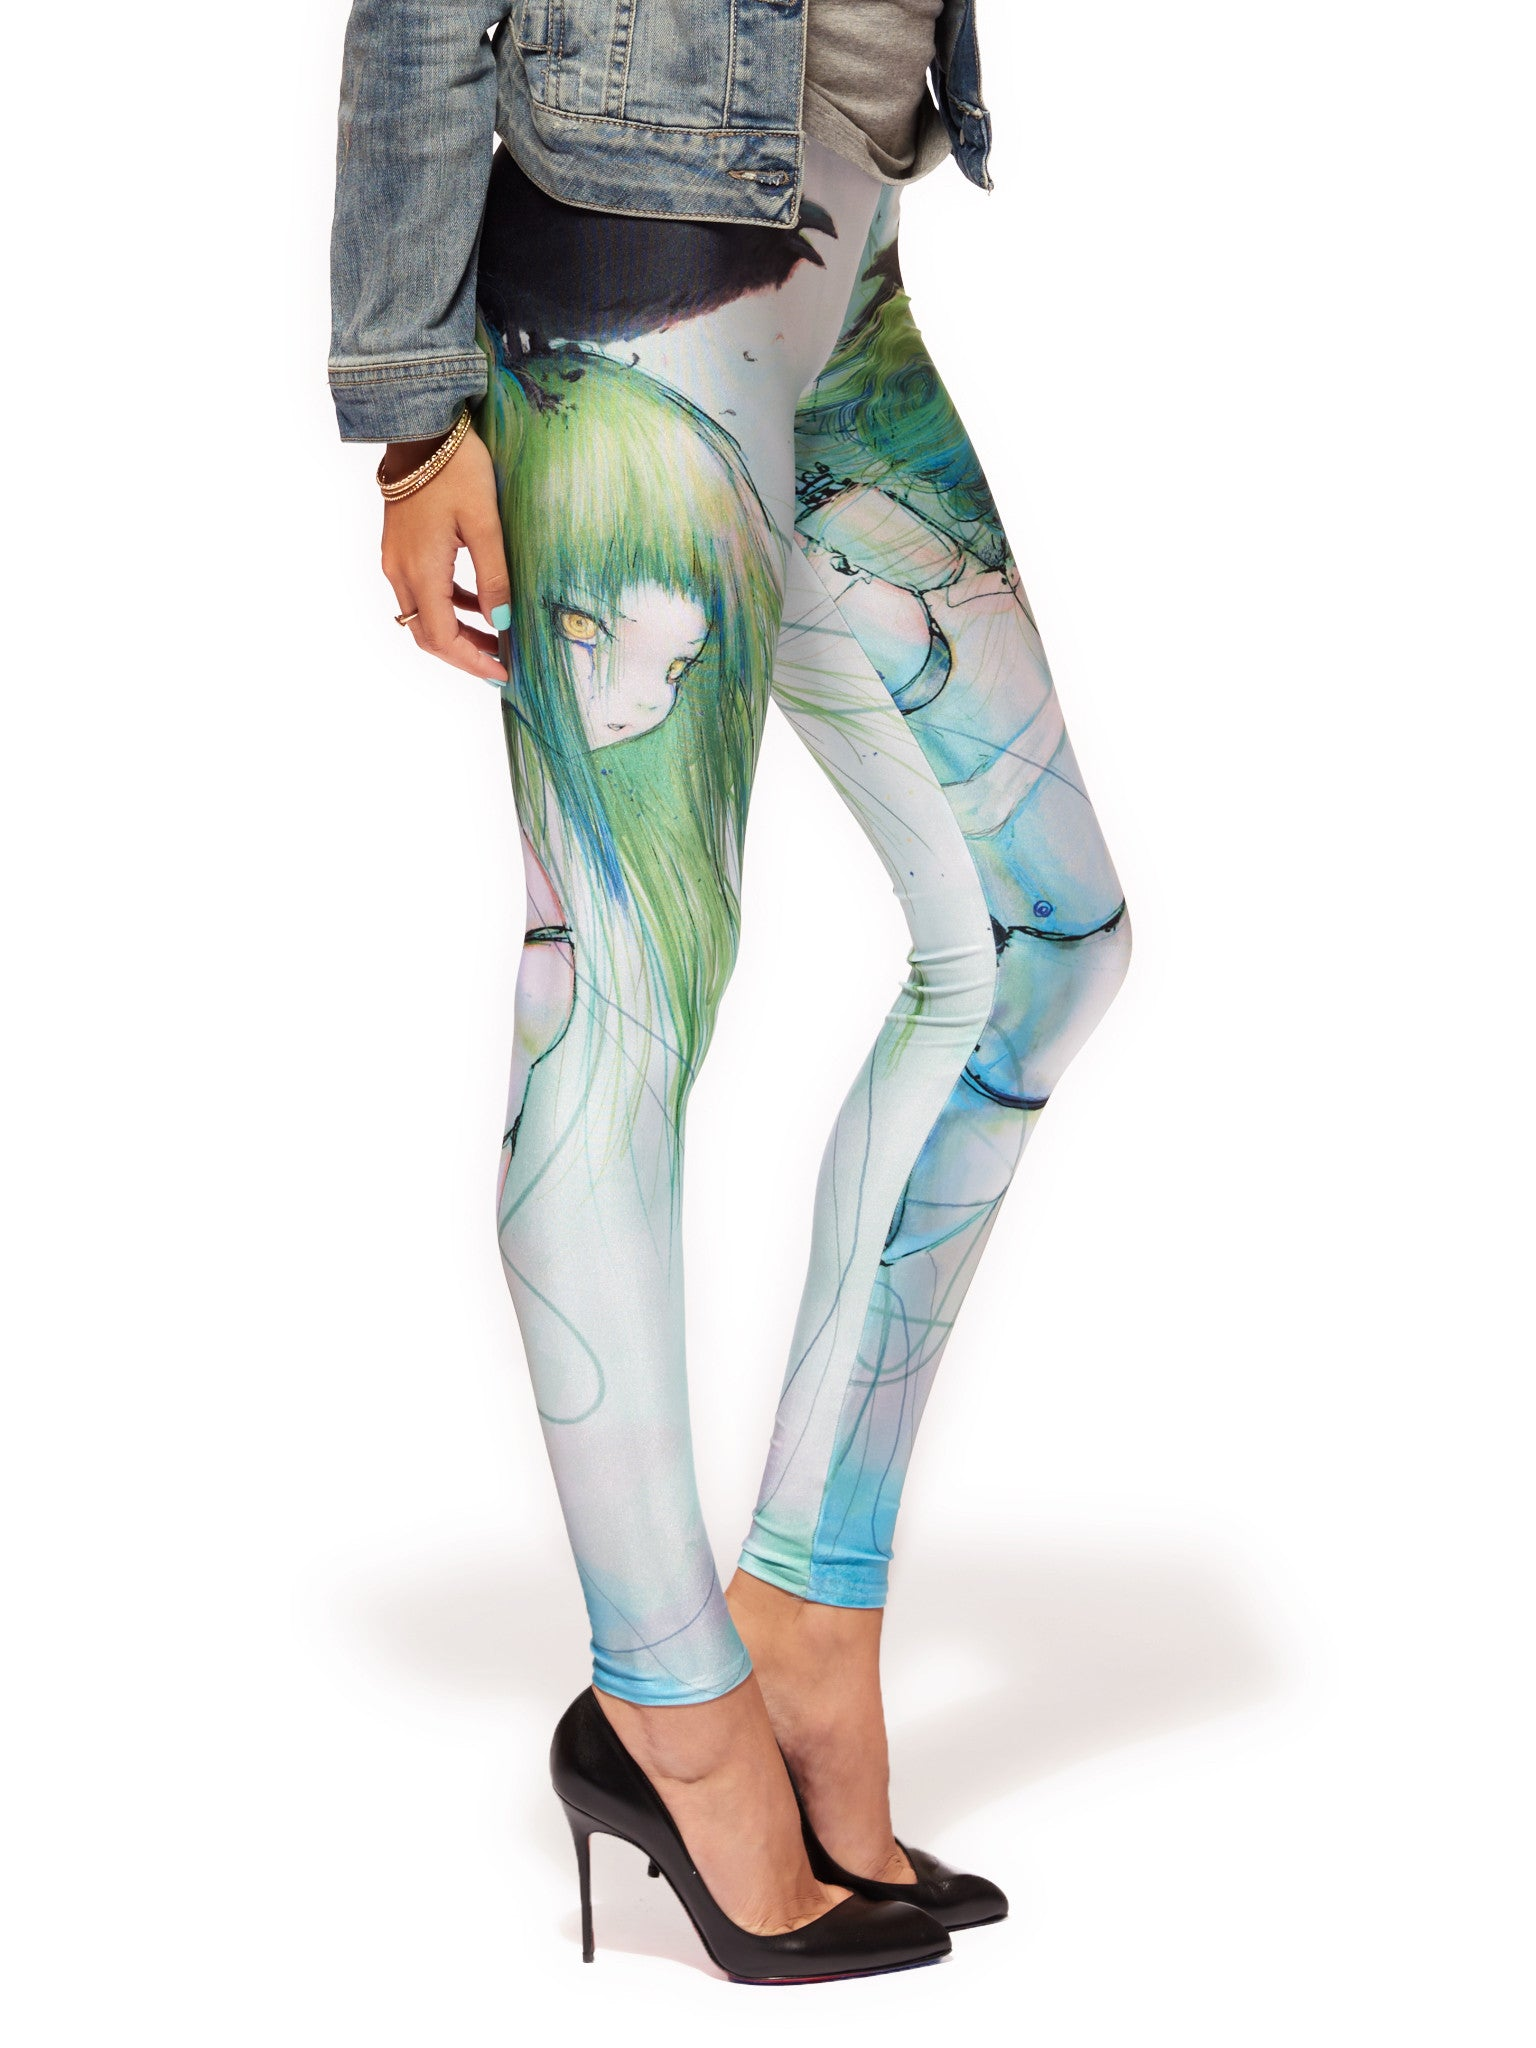 Disassembled Tears Queen West Leggings - Nuvango  - 2